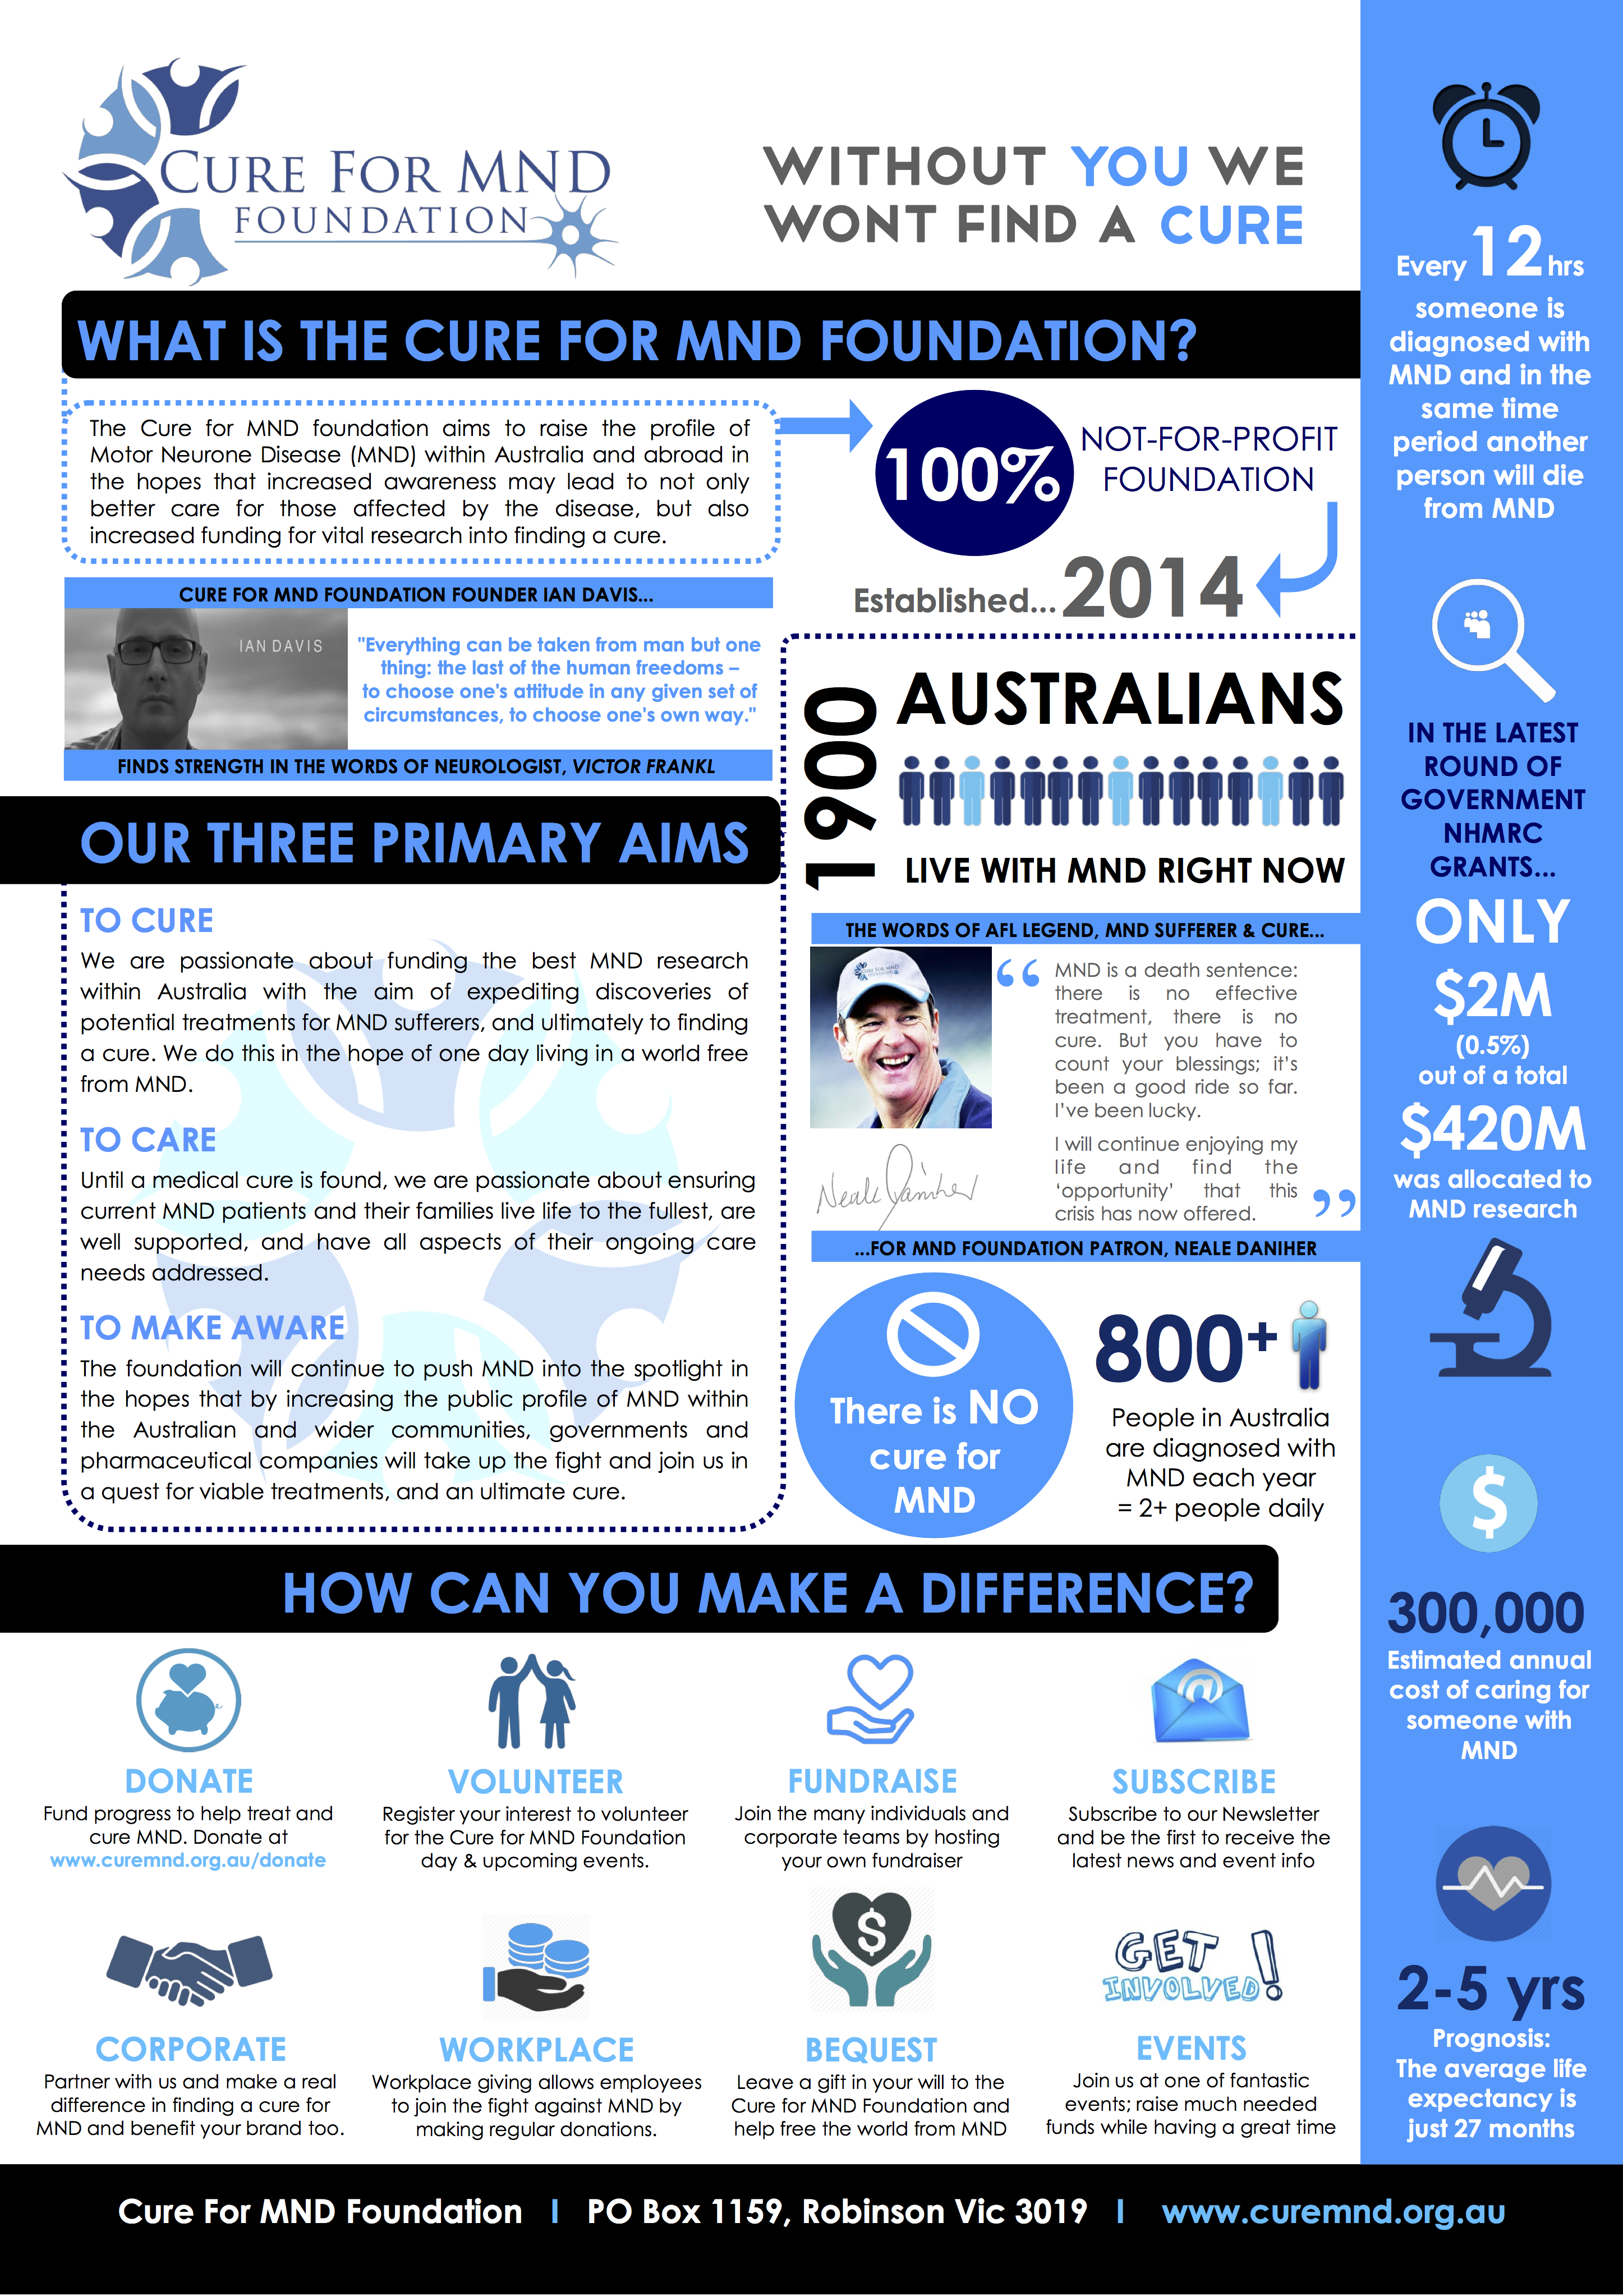 Cure-for-MND-Foundation-Infographic-V1